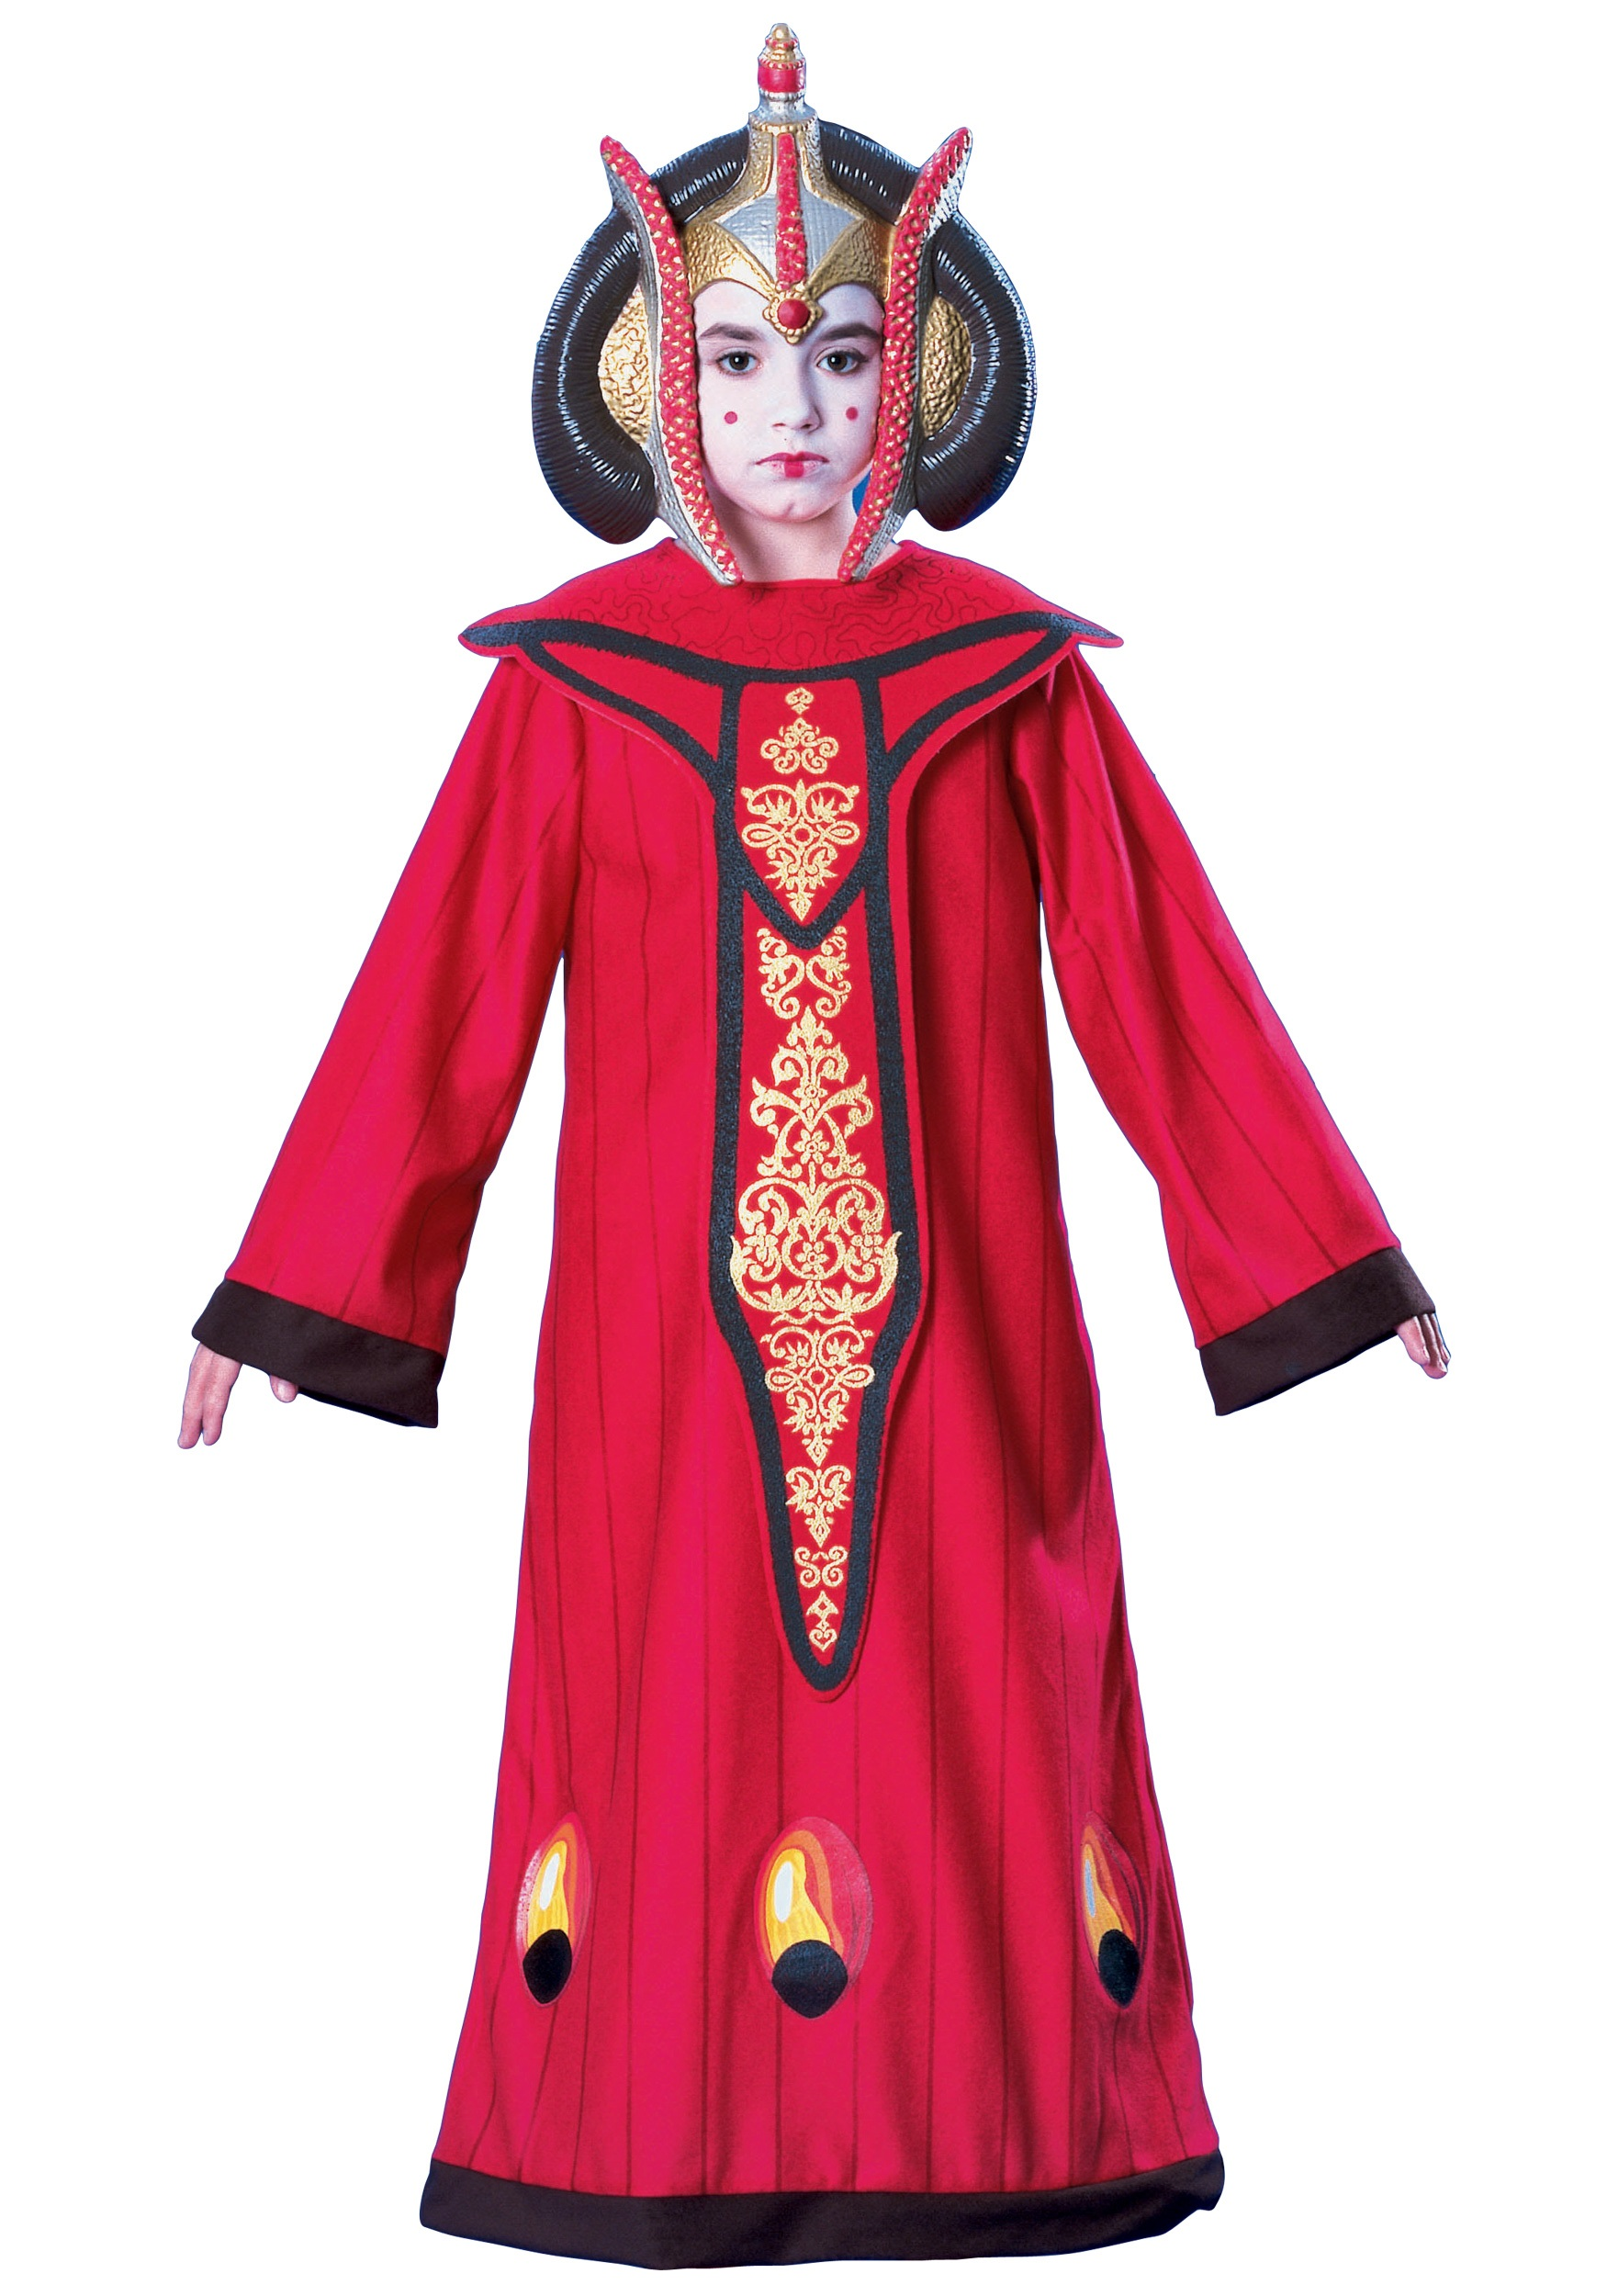 Star Wars Halloween Costumes.Kids Queen Amidala Costume